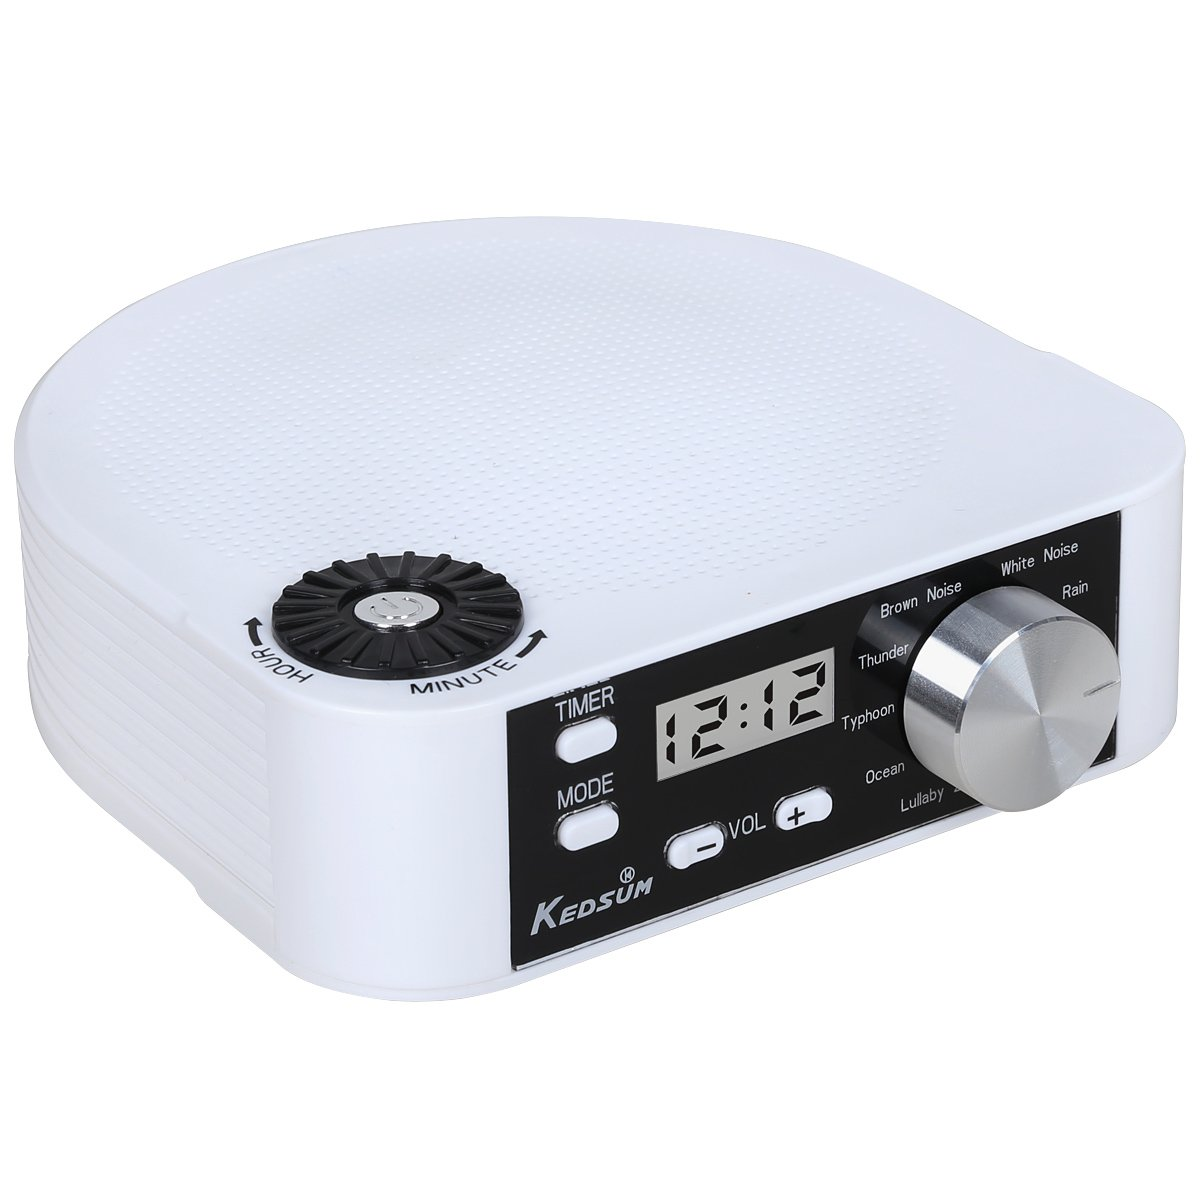 KEDSUM White Noise Machine